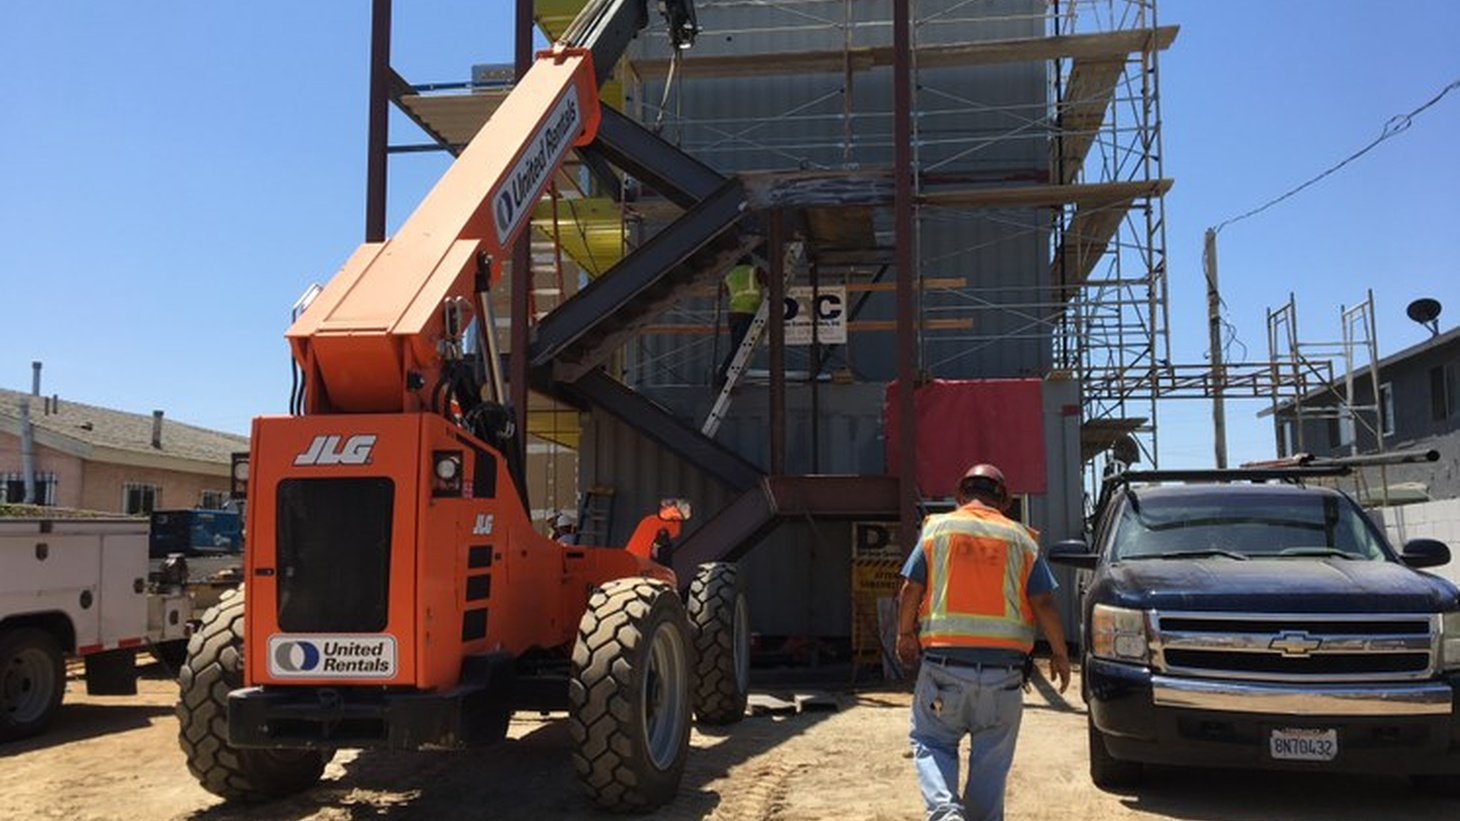 Workers construct an affordable project out of shipping containers for FlyawayHomes in South LA.